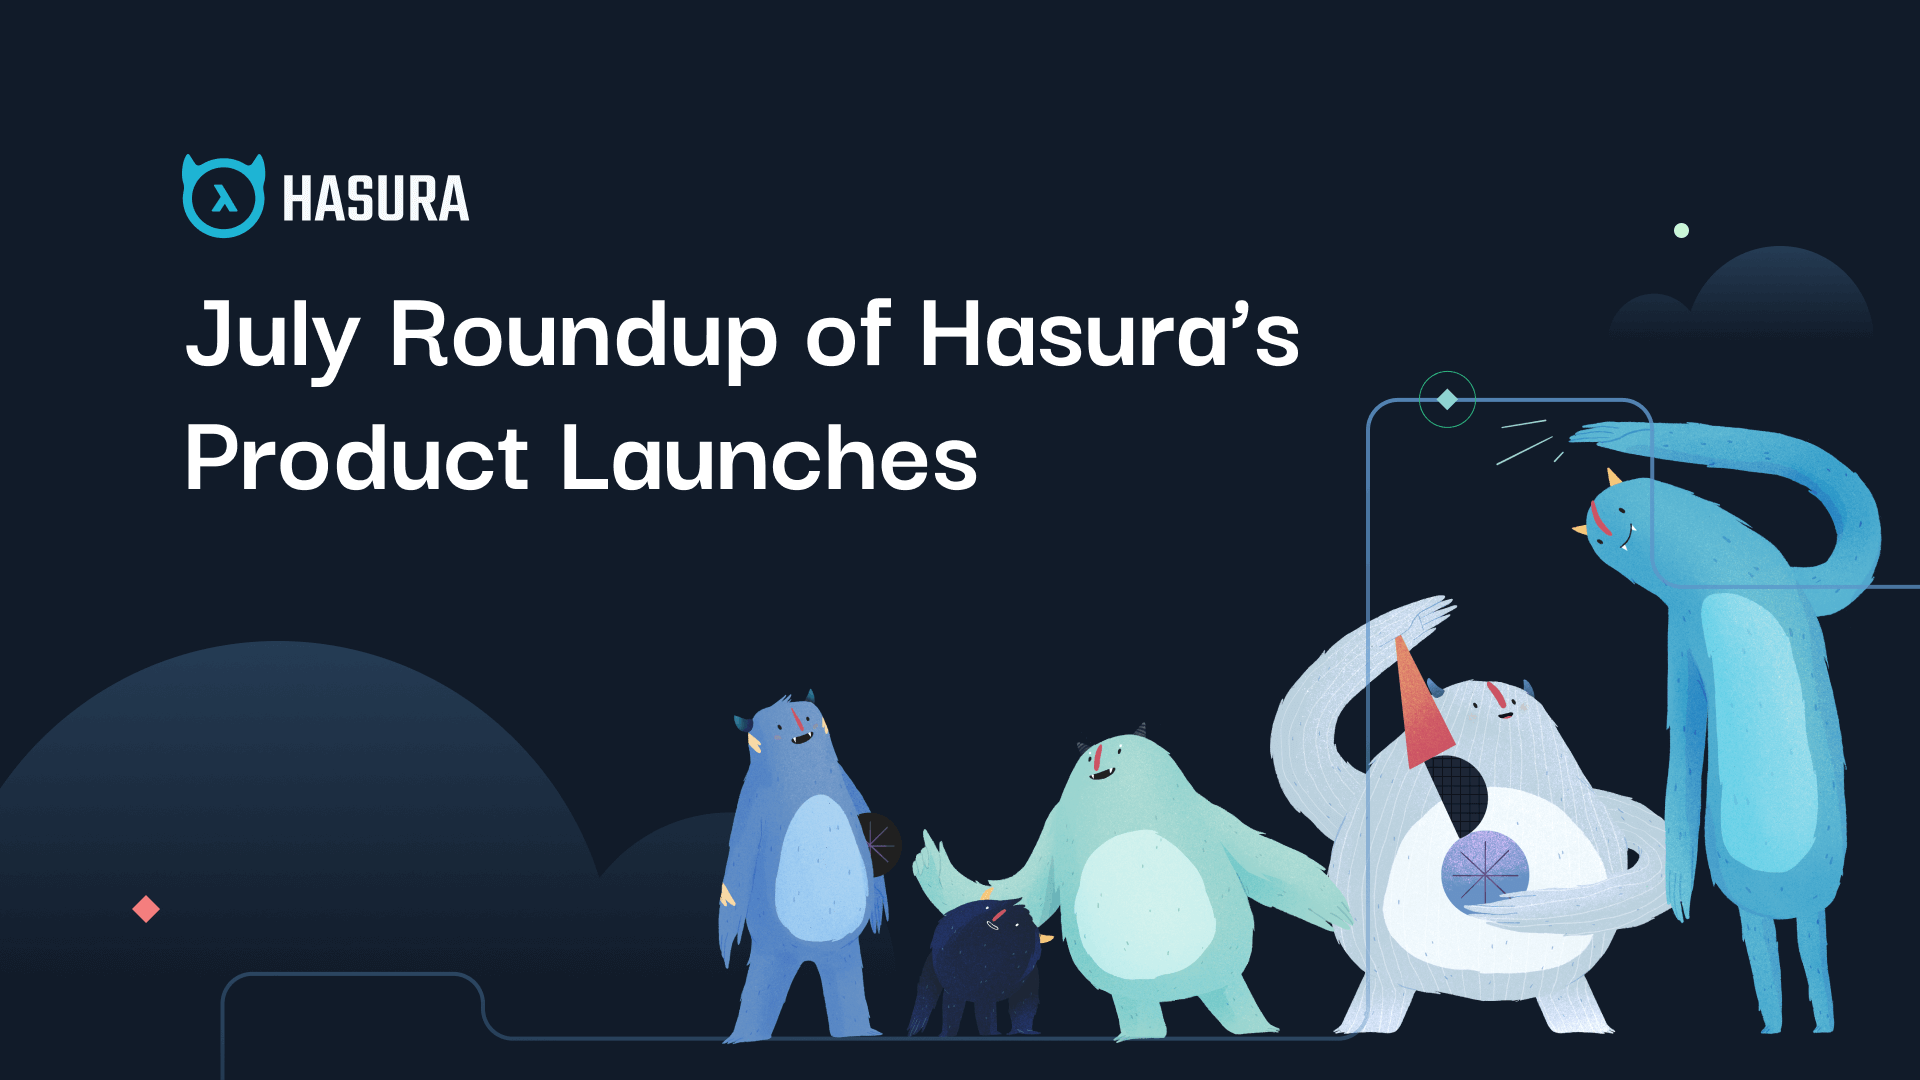 July Roundup of Hasura's Product Launches: BigQuery, Citus Support, Template Gallery & Database monitoring